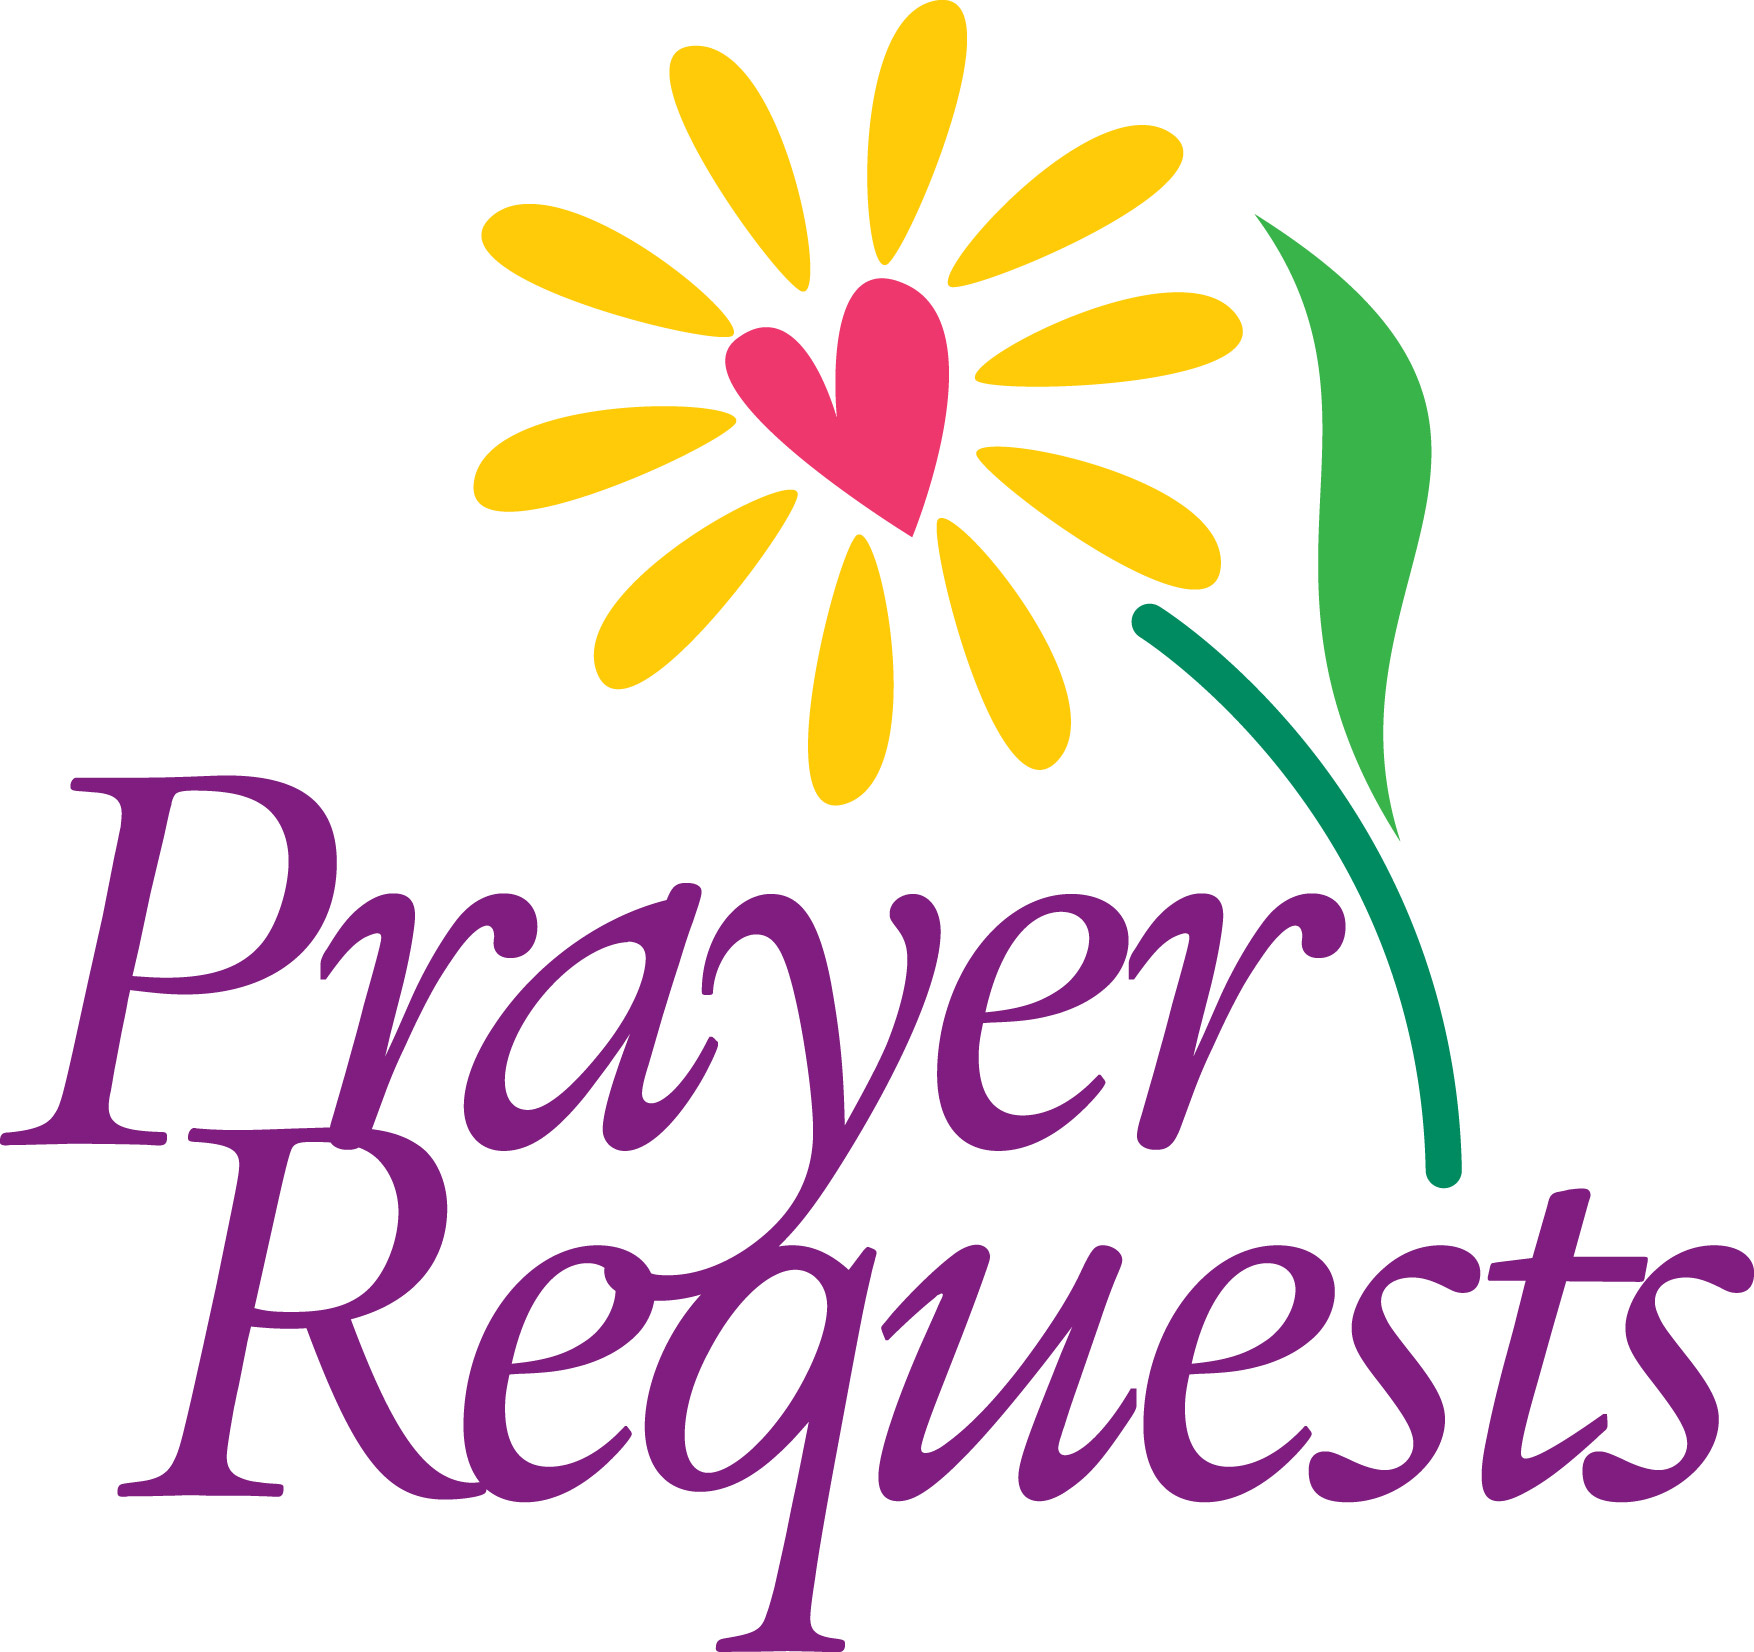 Warrior clipart prayer Cliparts Clipart Zone Cliparts Meeting